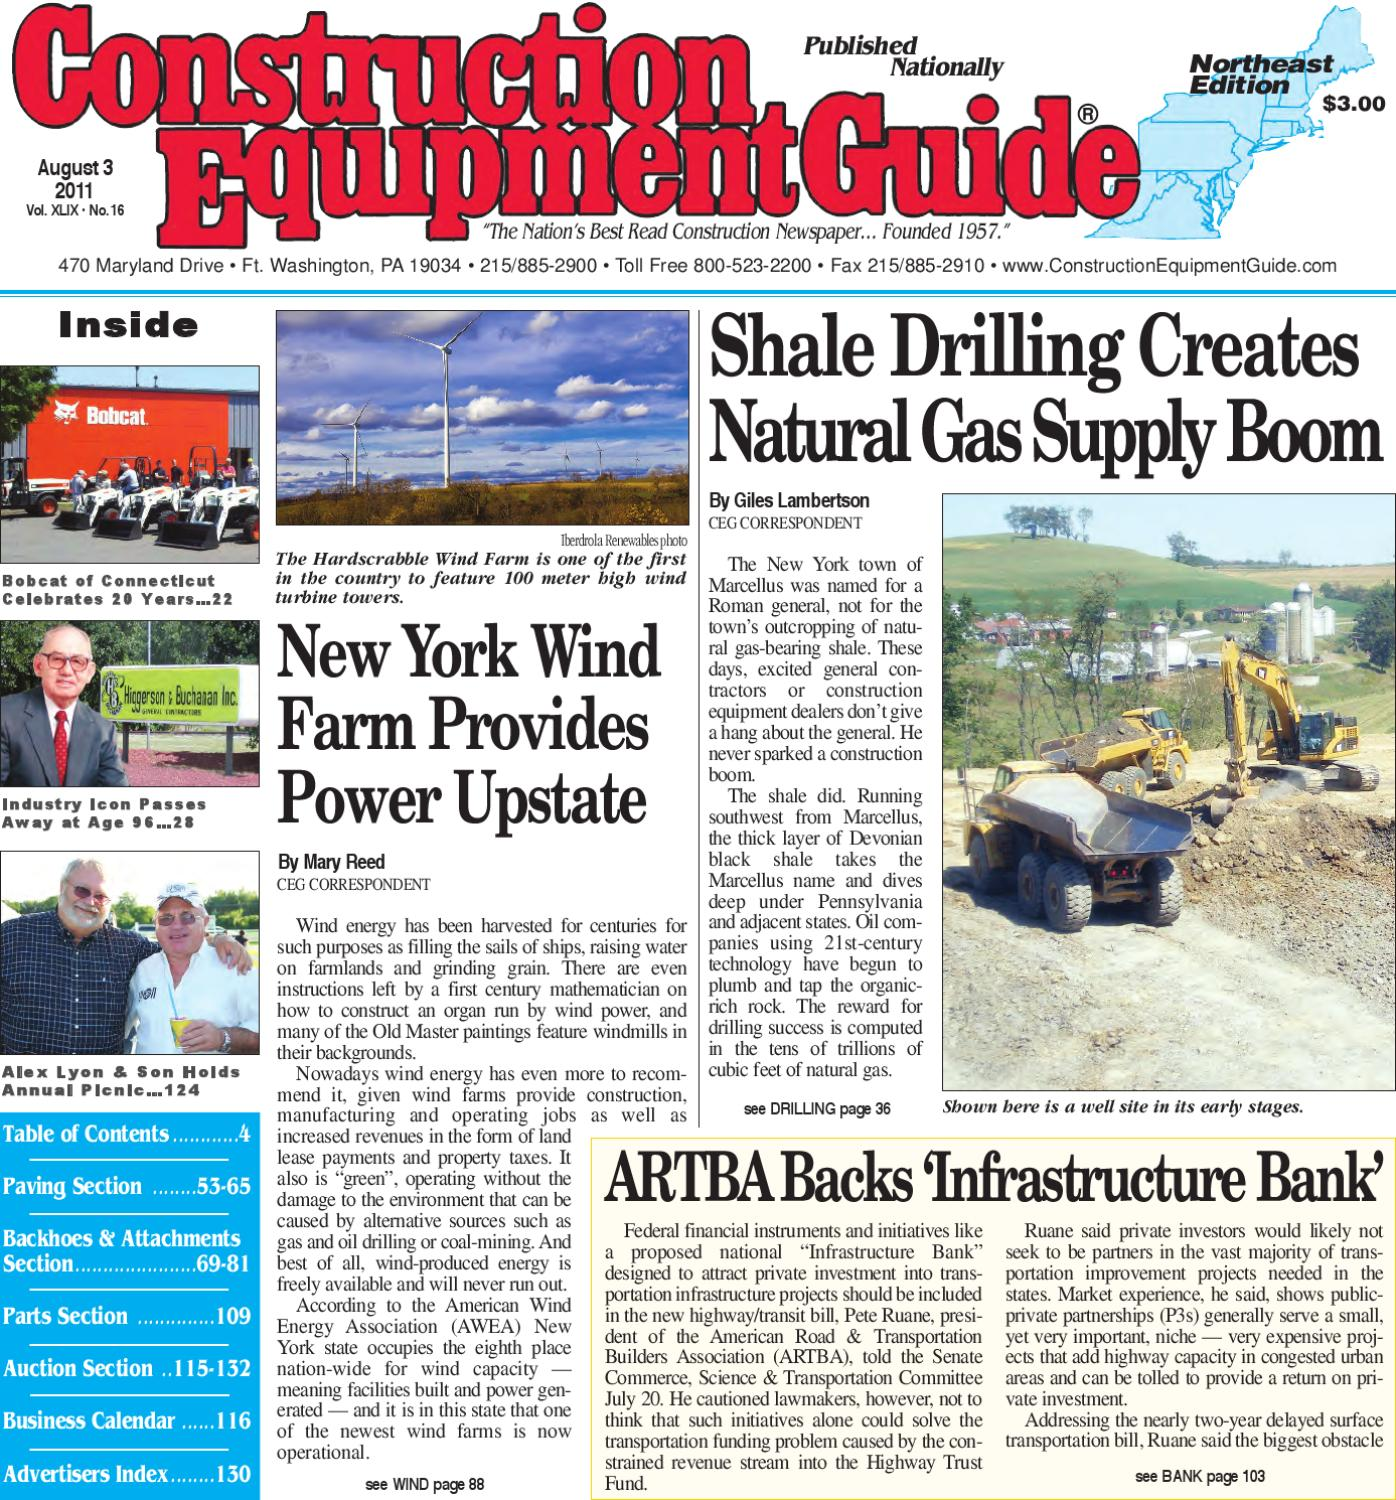 640998b75 Northeast #16, 2011 by Construction Equipment Guide - issuu